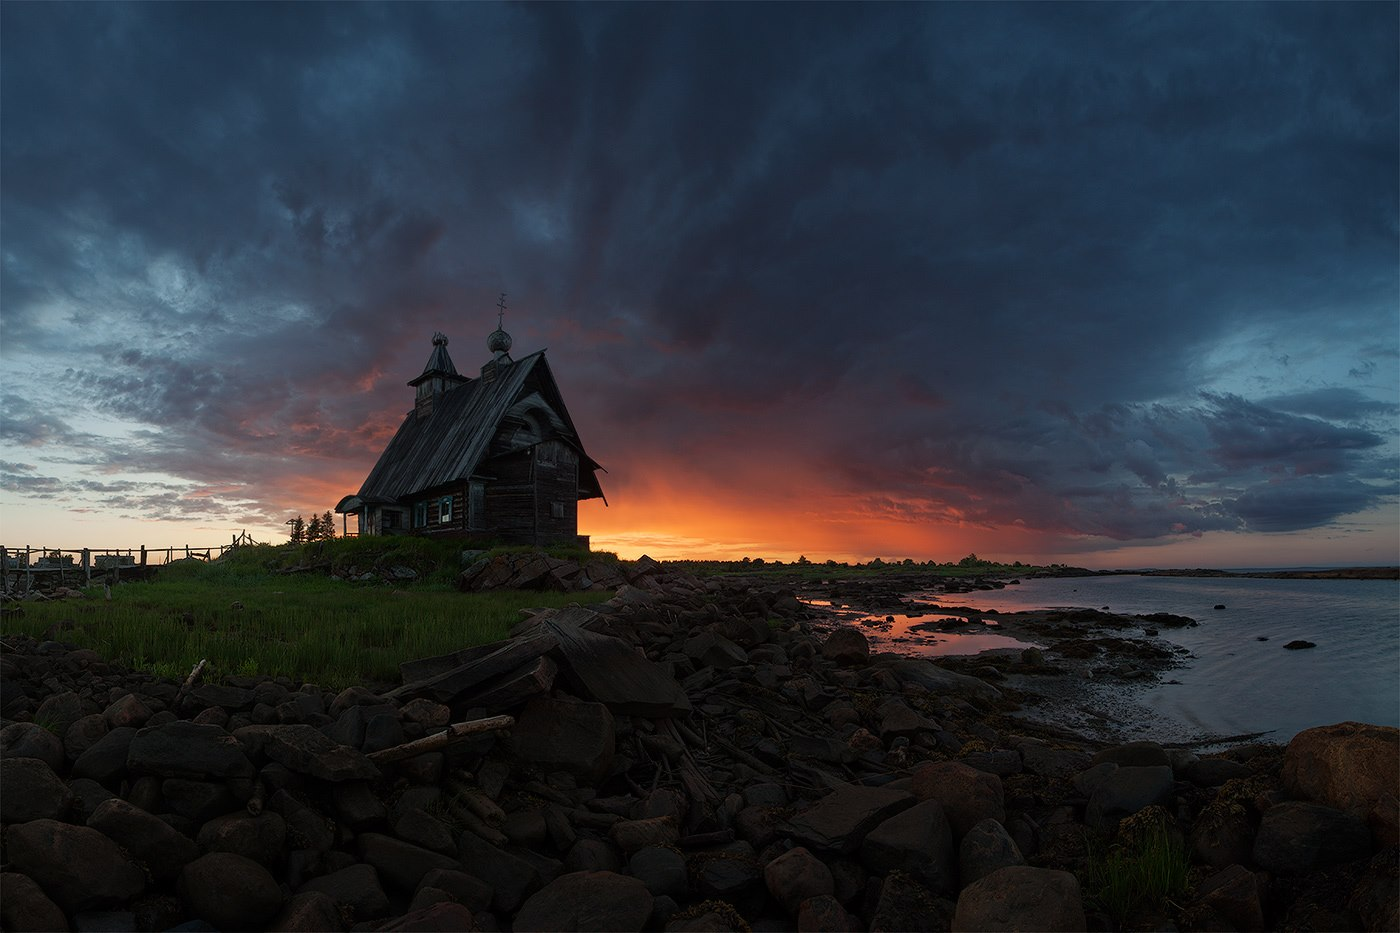 Soul of Russia: Exhibition of landscape photography in Moscow - 22